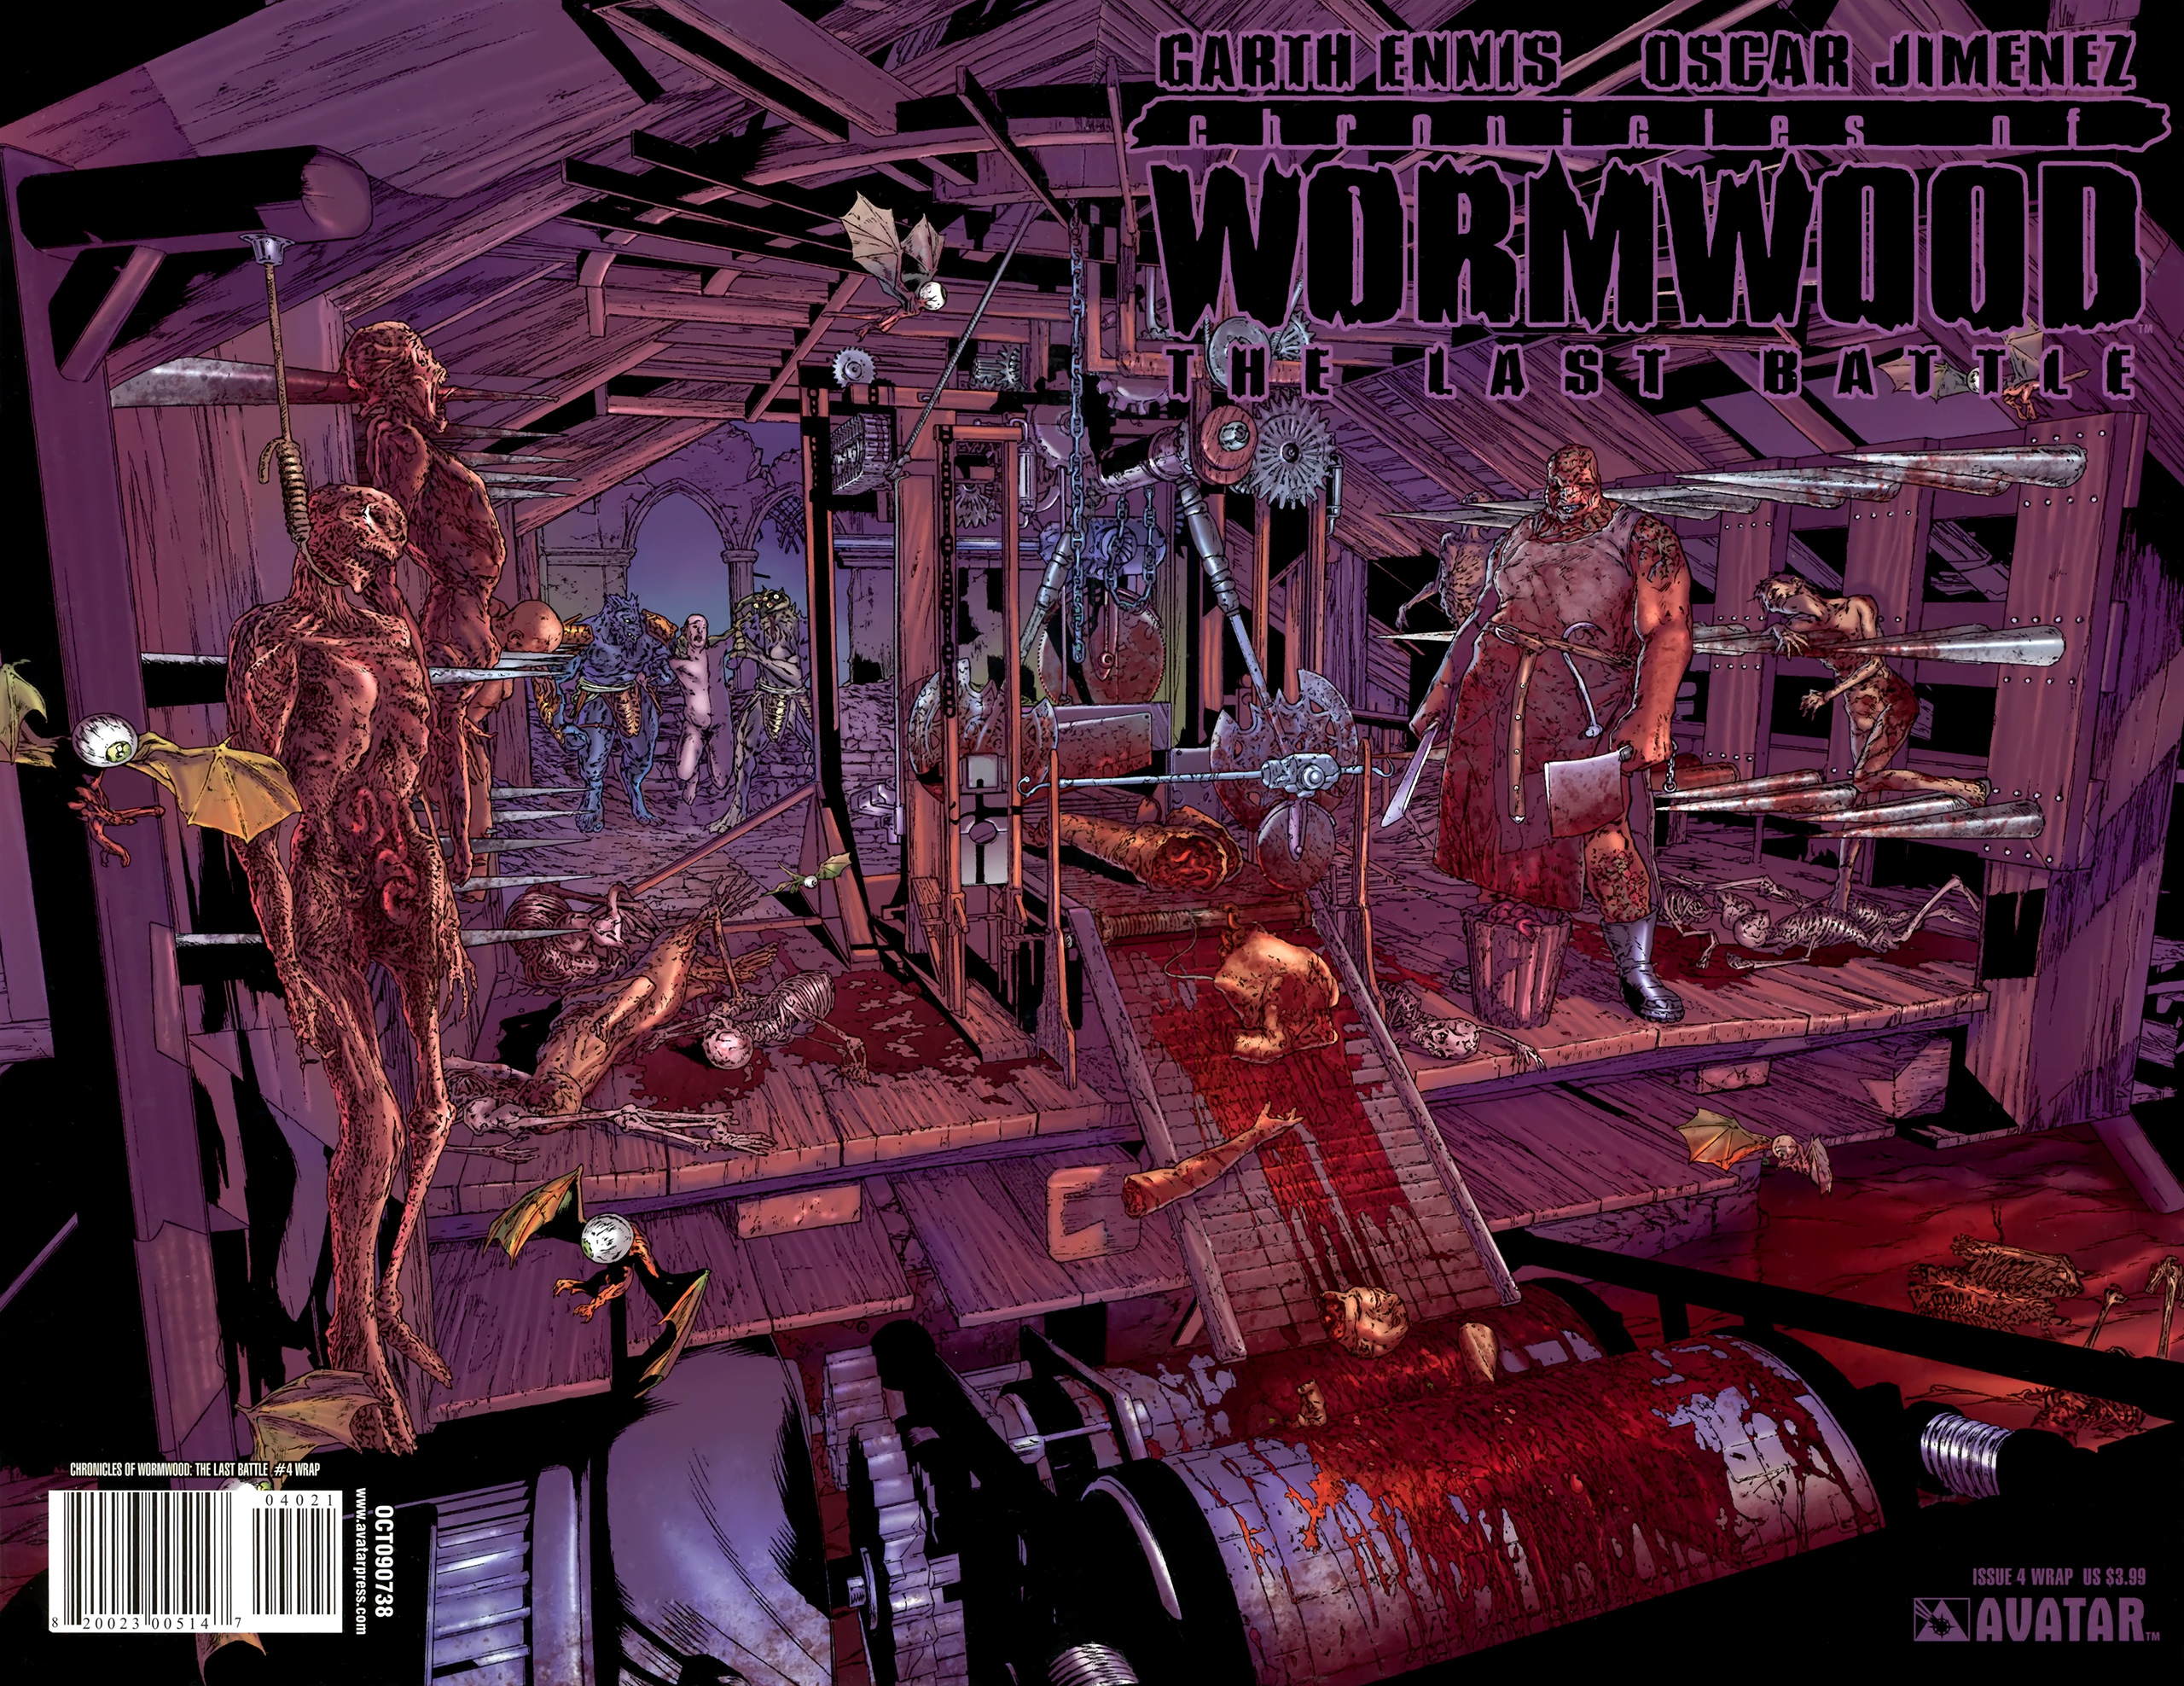 Read online Chronicles of Wormwood: The Last Battle comic -  Issue #4 - 2